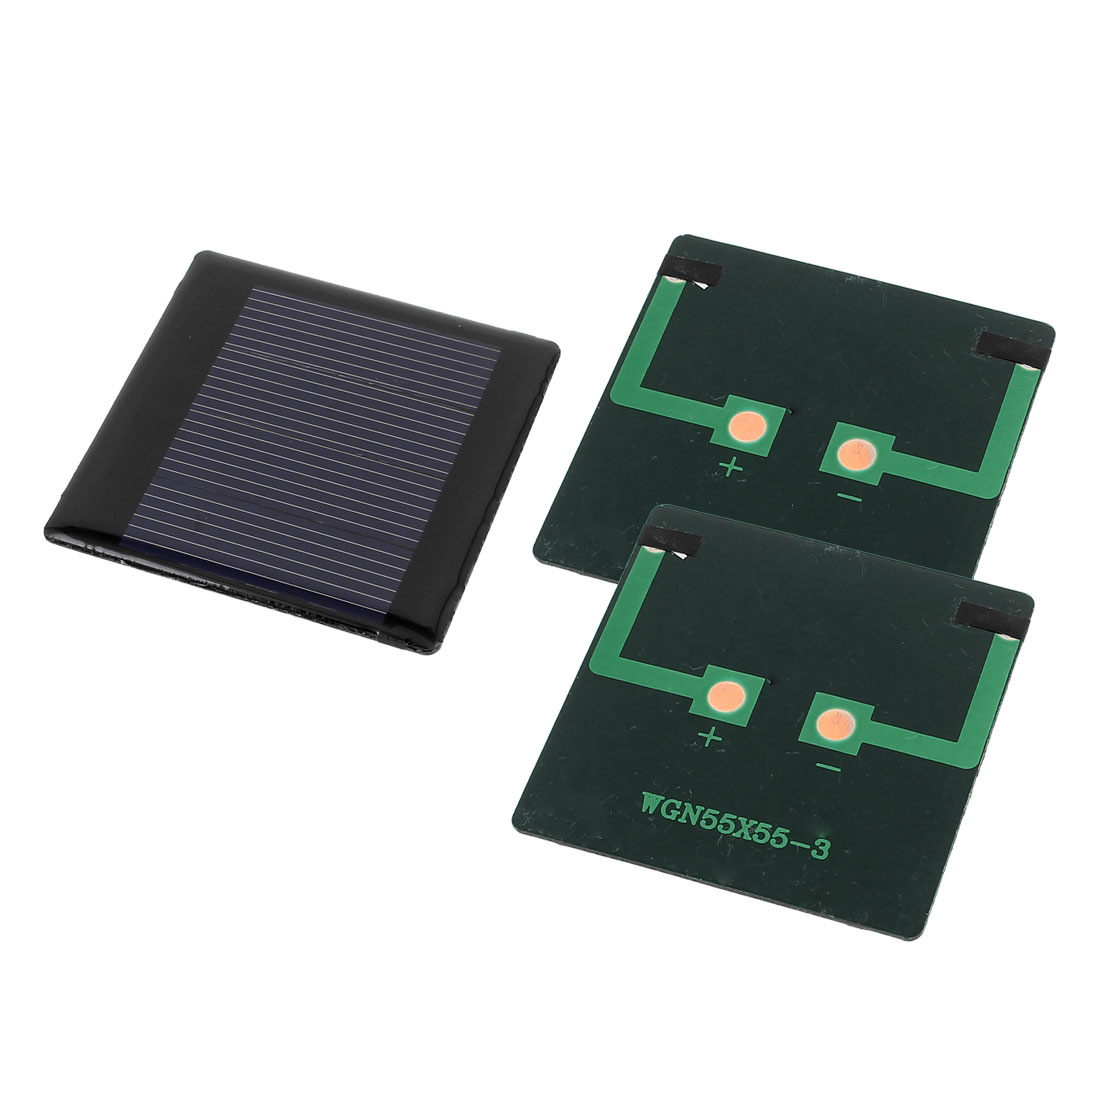 3 Pcs 2V 0.3W DIY Polycrystallinesilicon Solar Panel Power Cell Battery Charger 55mm x 55mm